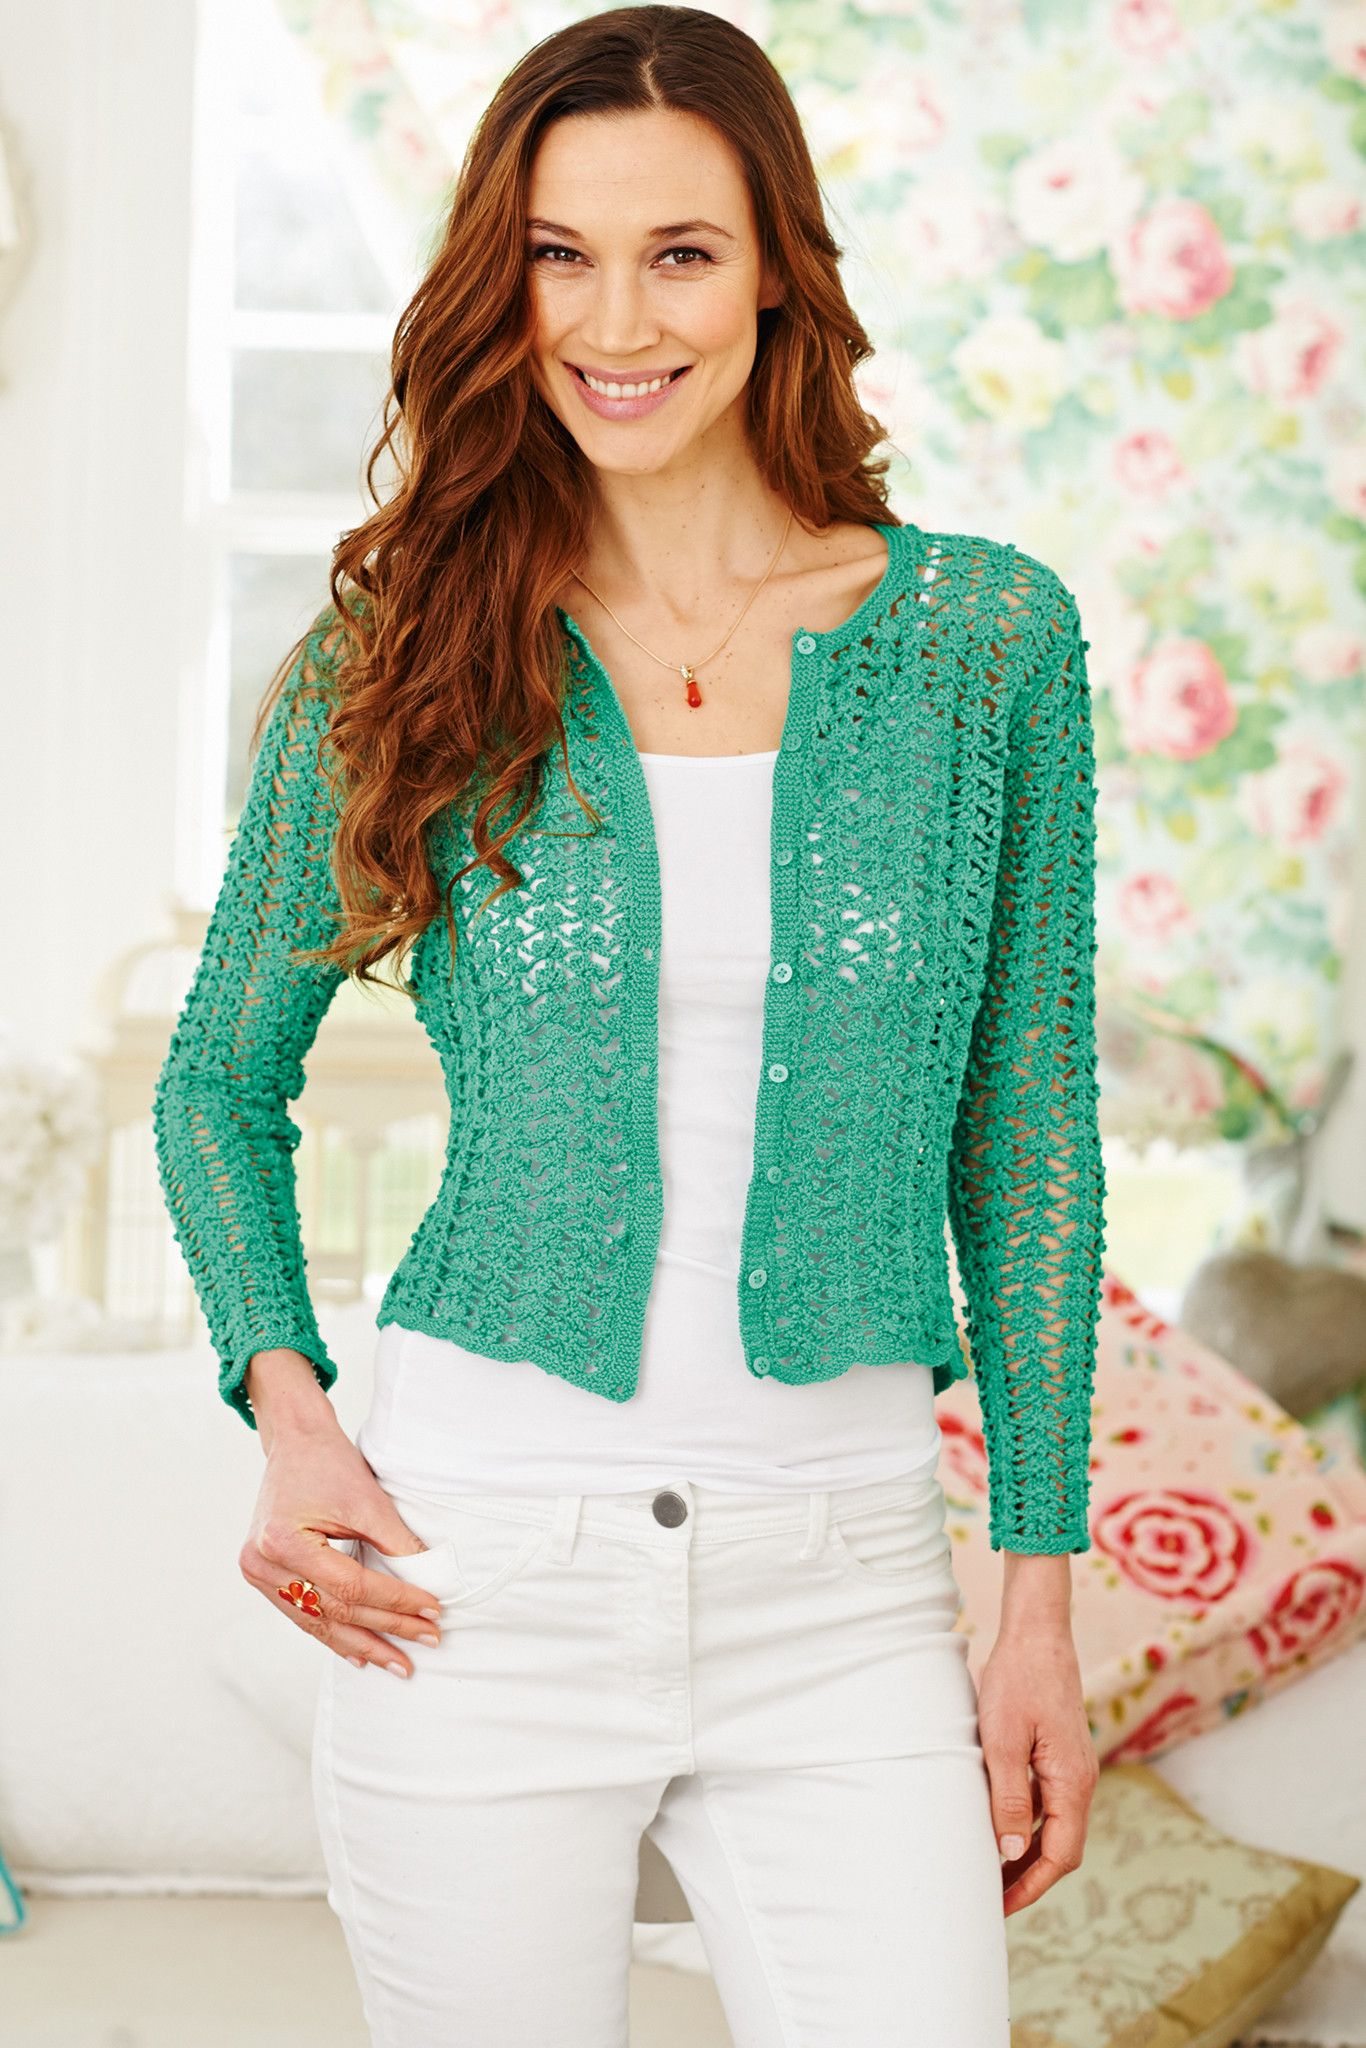 Ladies' crocheted cardigan with a lace look. Shop this women's ...